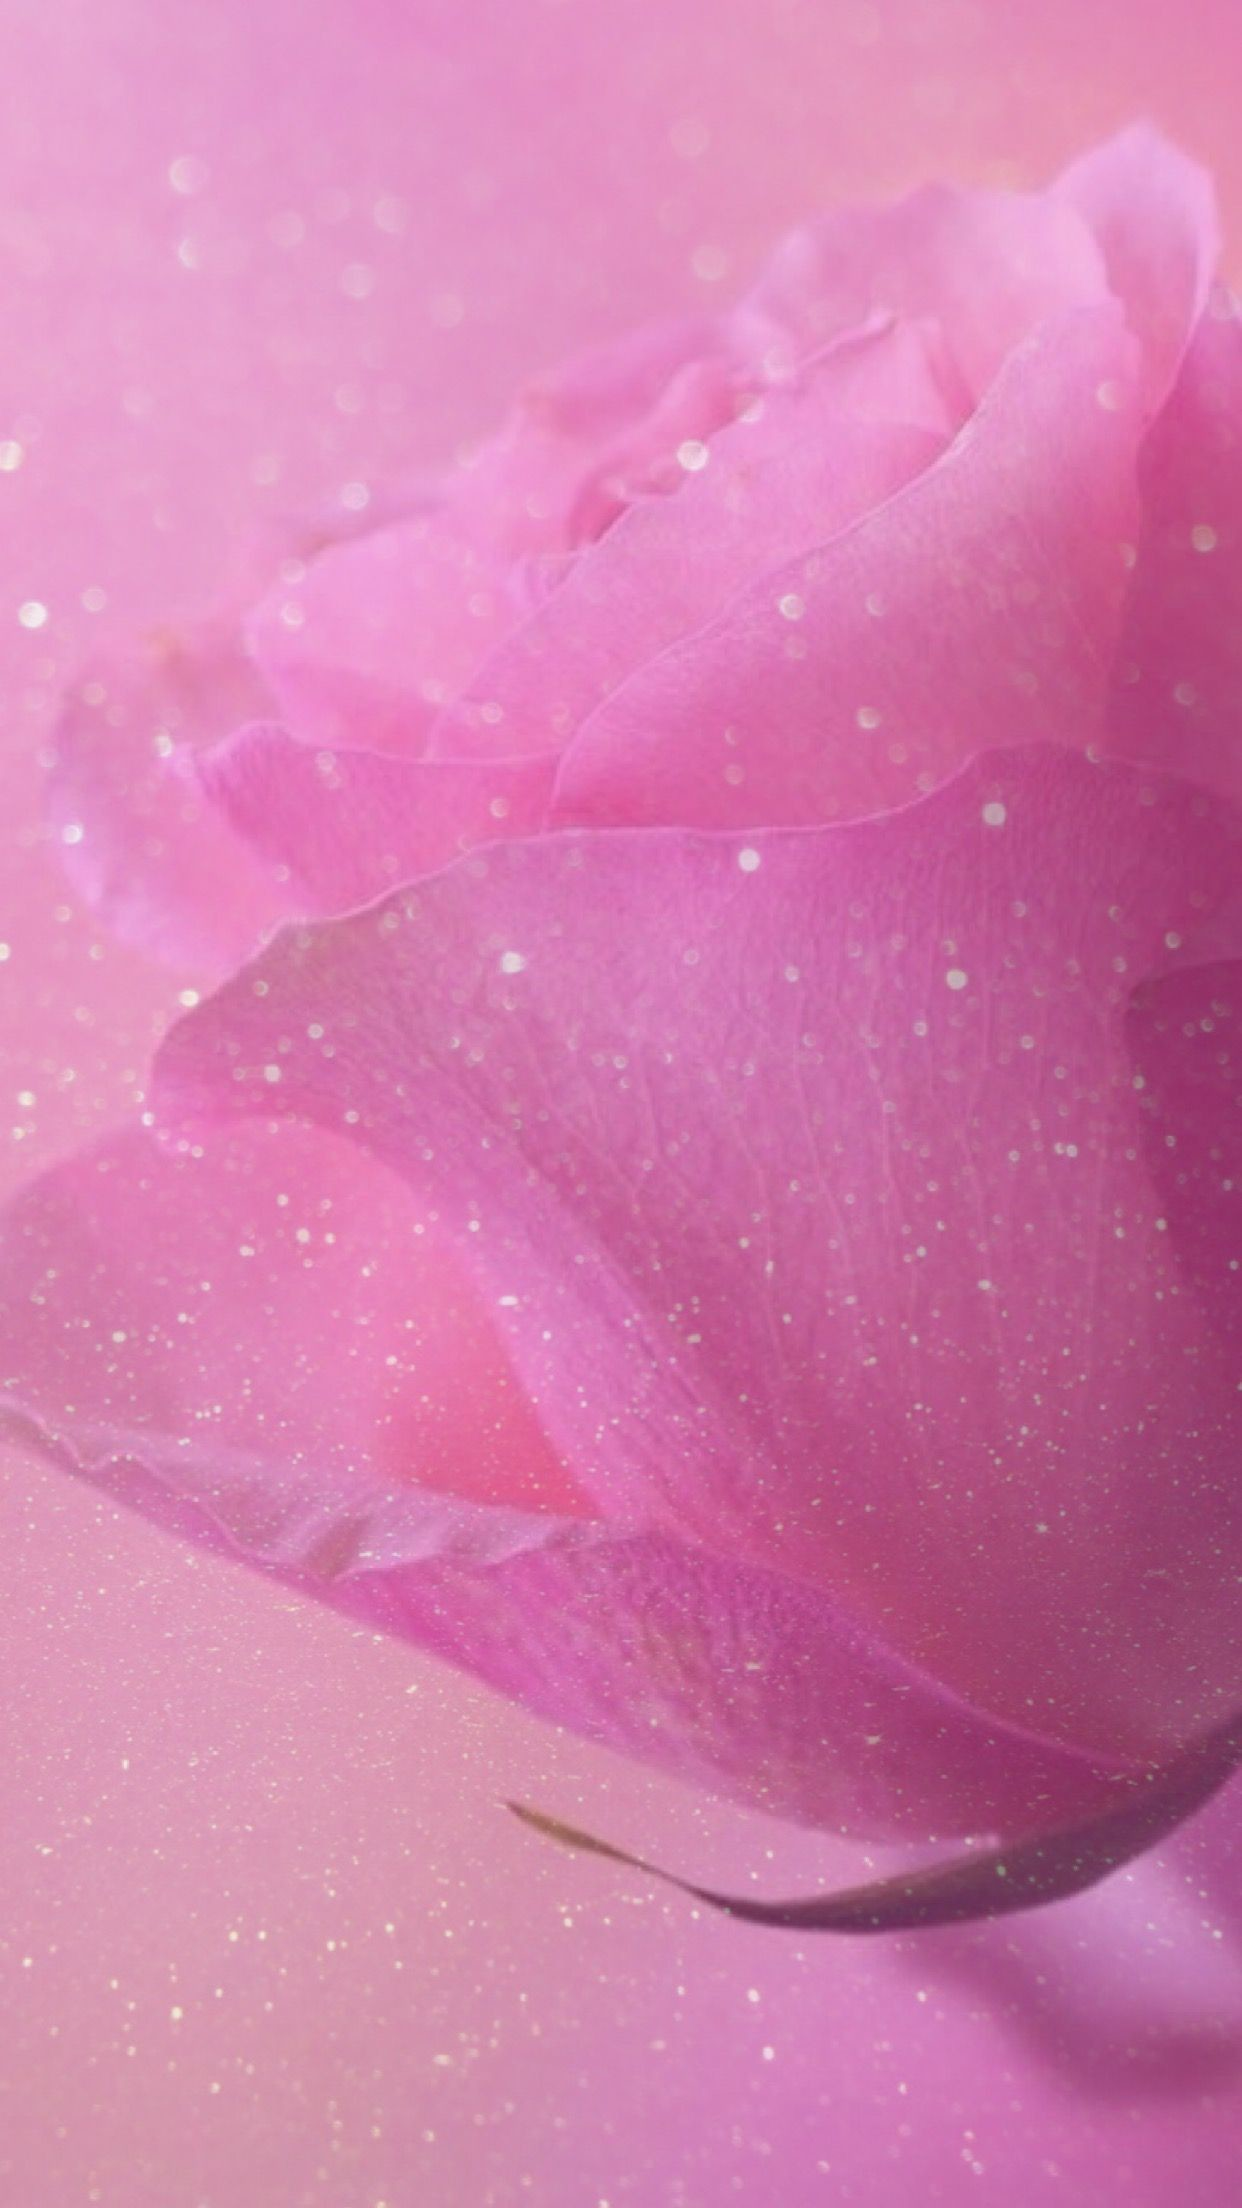 Res: 1242x2208, rose, sparkle, glitter, wallpaper, background, pink, pretty, girly,